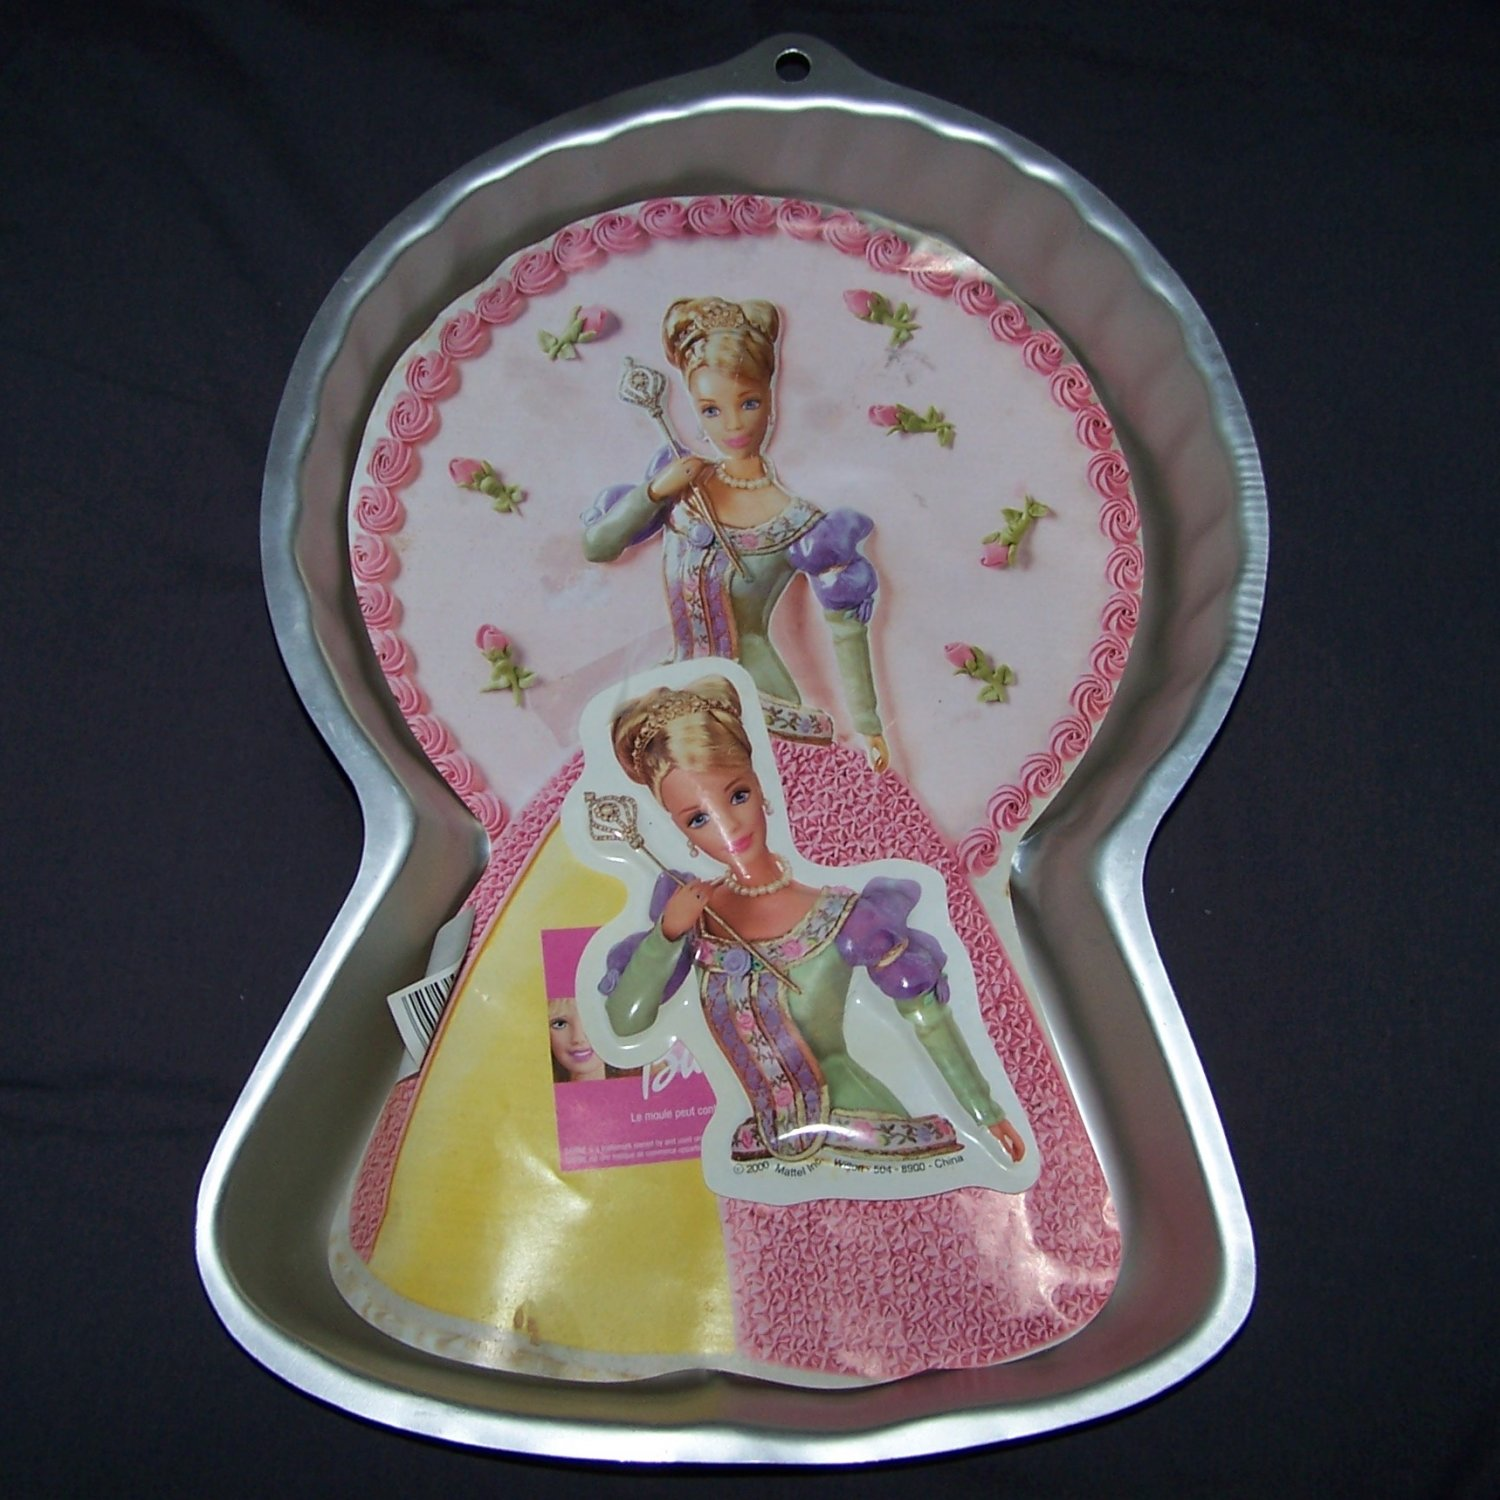 Wilton 2105-8900 BARBIE Cake Pan Mold with FACE PLATE & Instructions 2000 Mattel